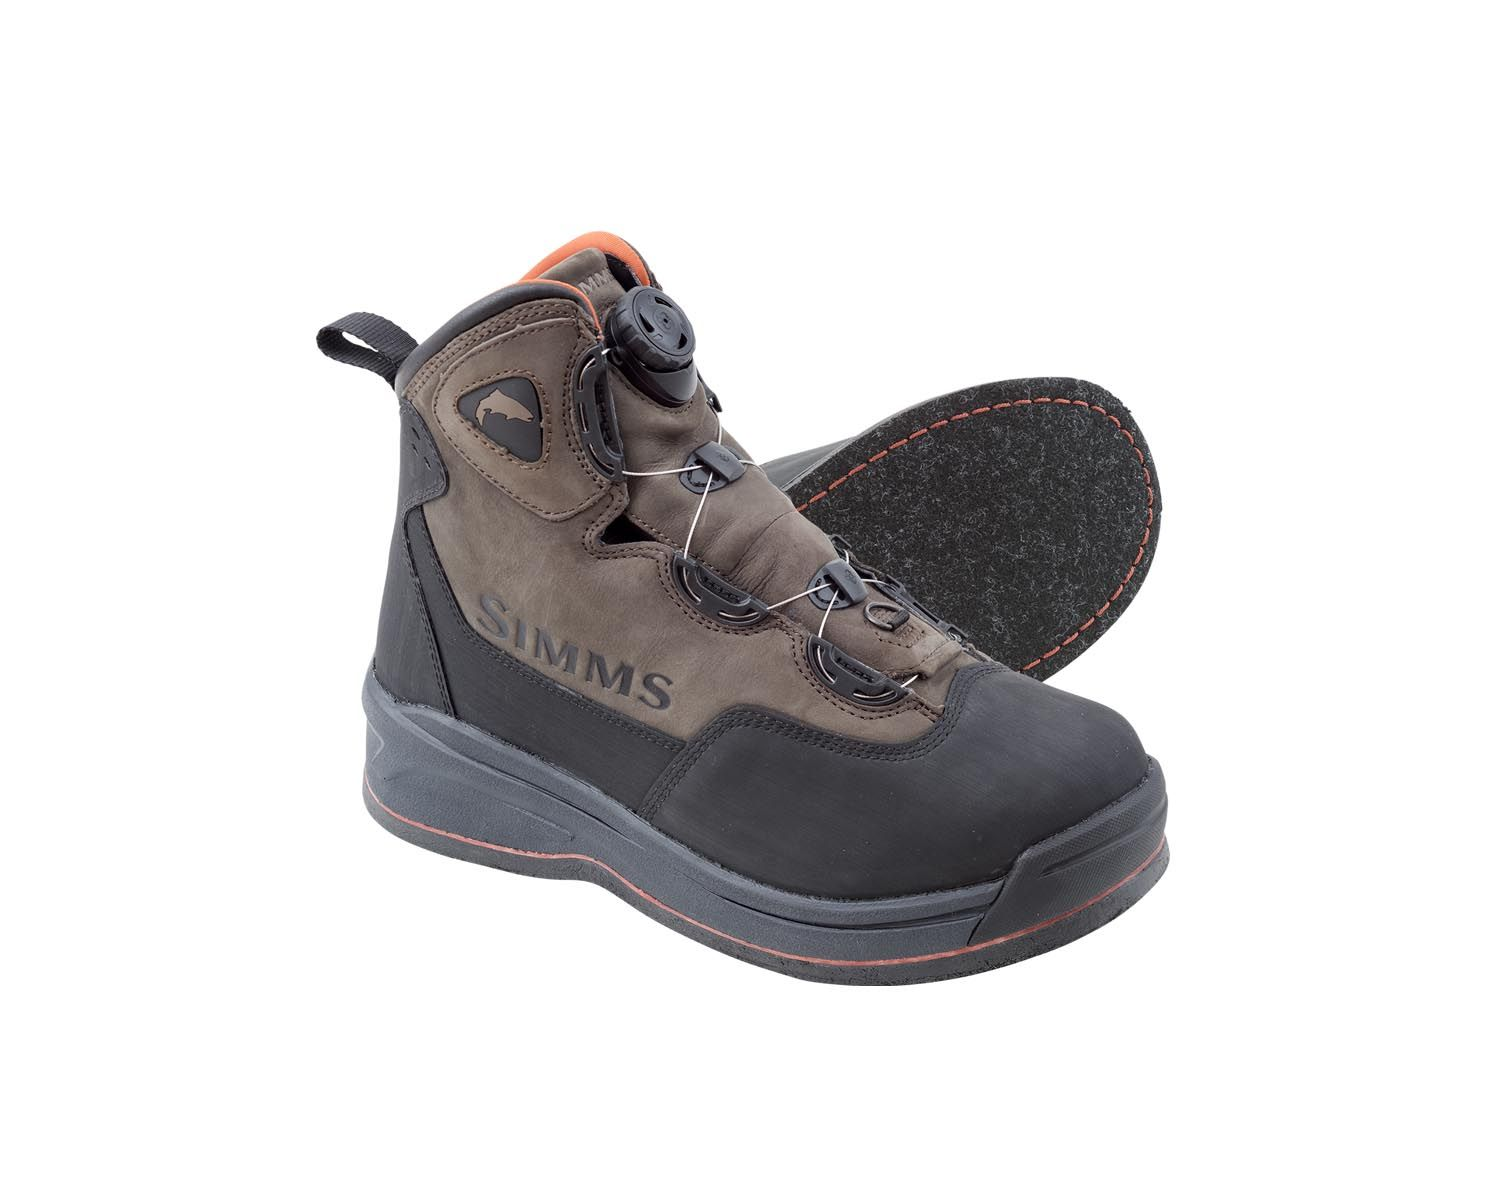 simms headwaters felt sole wading boots